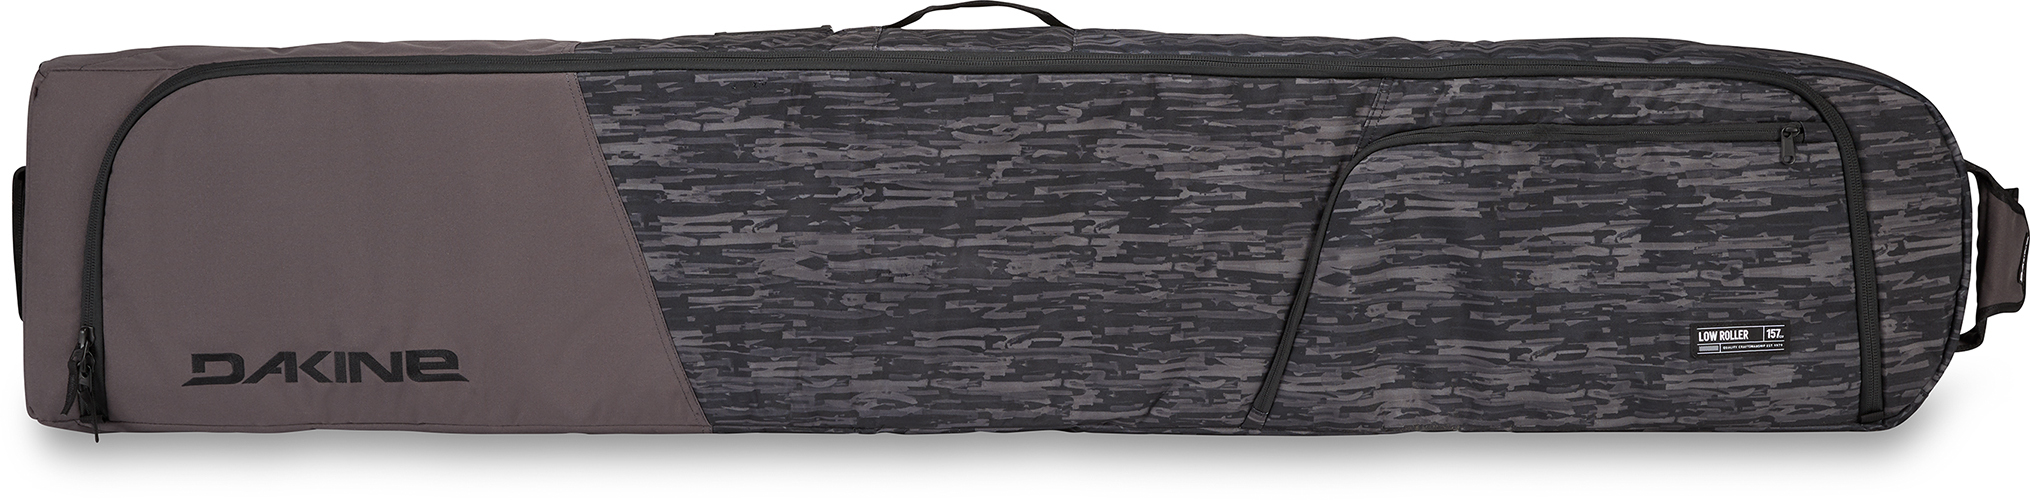 Dakine Low Roller Чехол для сноуборда Dakine Low Roller Snowboard Bag 175 Shadow Dash LOWROLLERSNOWBOARDBAG-SHADOWDASH-610934383003_10001463_SHADOWDASH-12M_MAIN.jpg